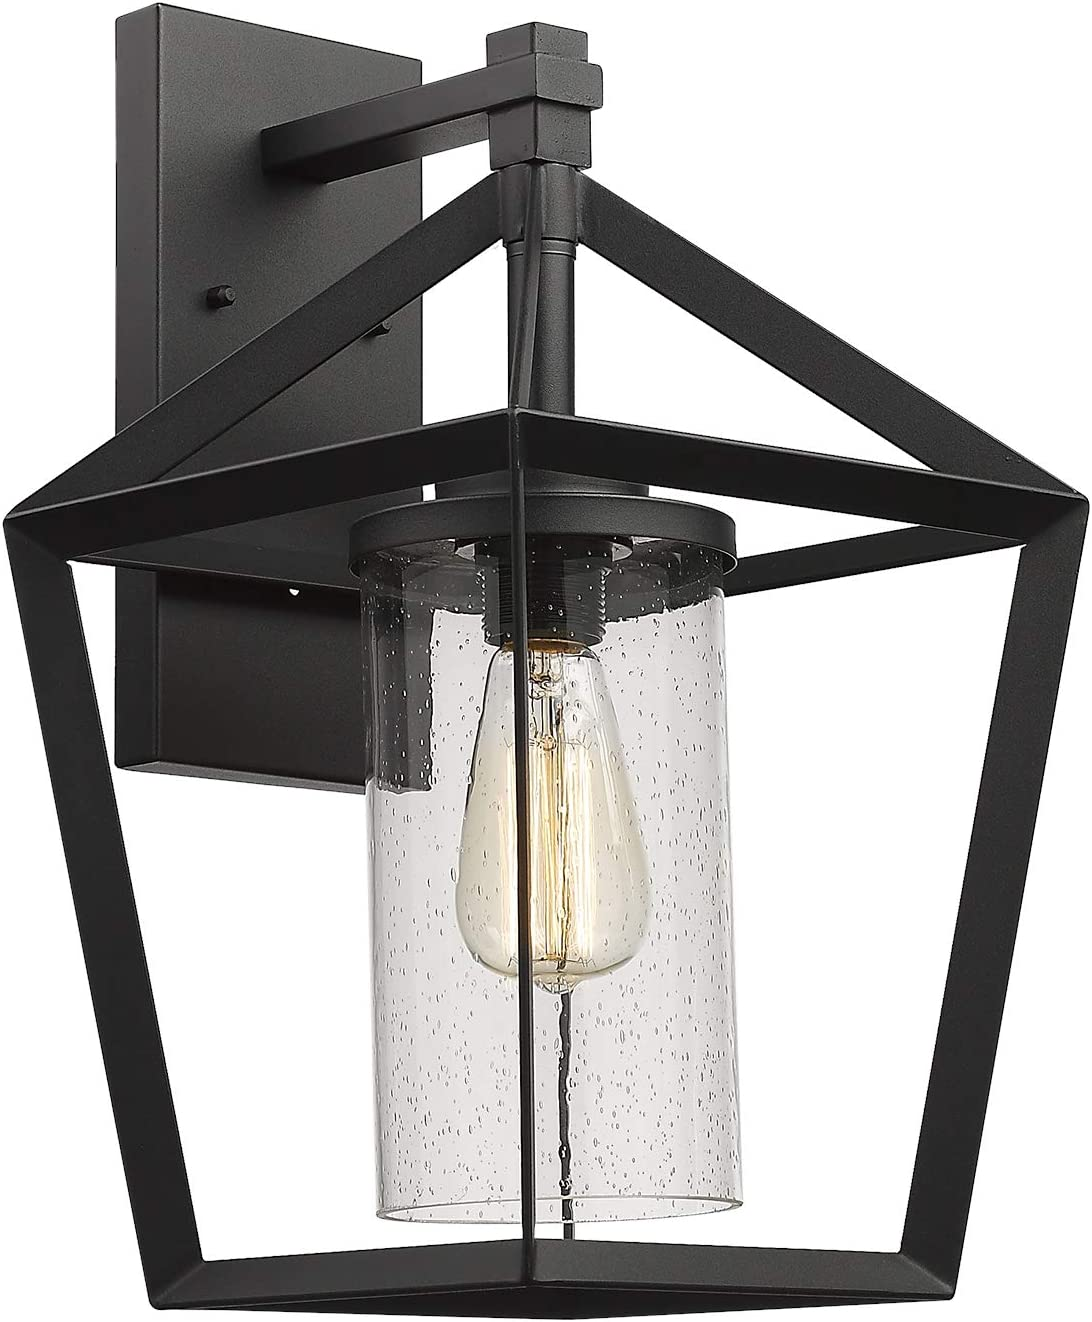 Emliviar Outdoor Wall Light, 17 Inch Large Exterior Light Fixture in Black Finish with Seeded Glass, YE19109W BK